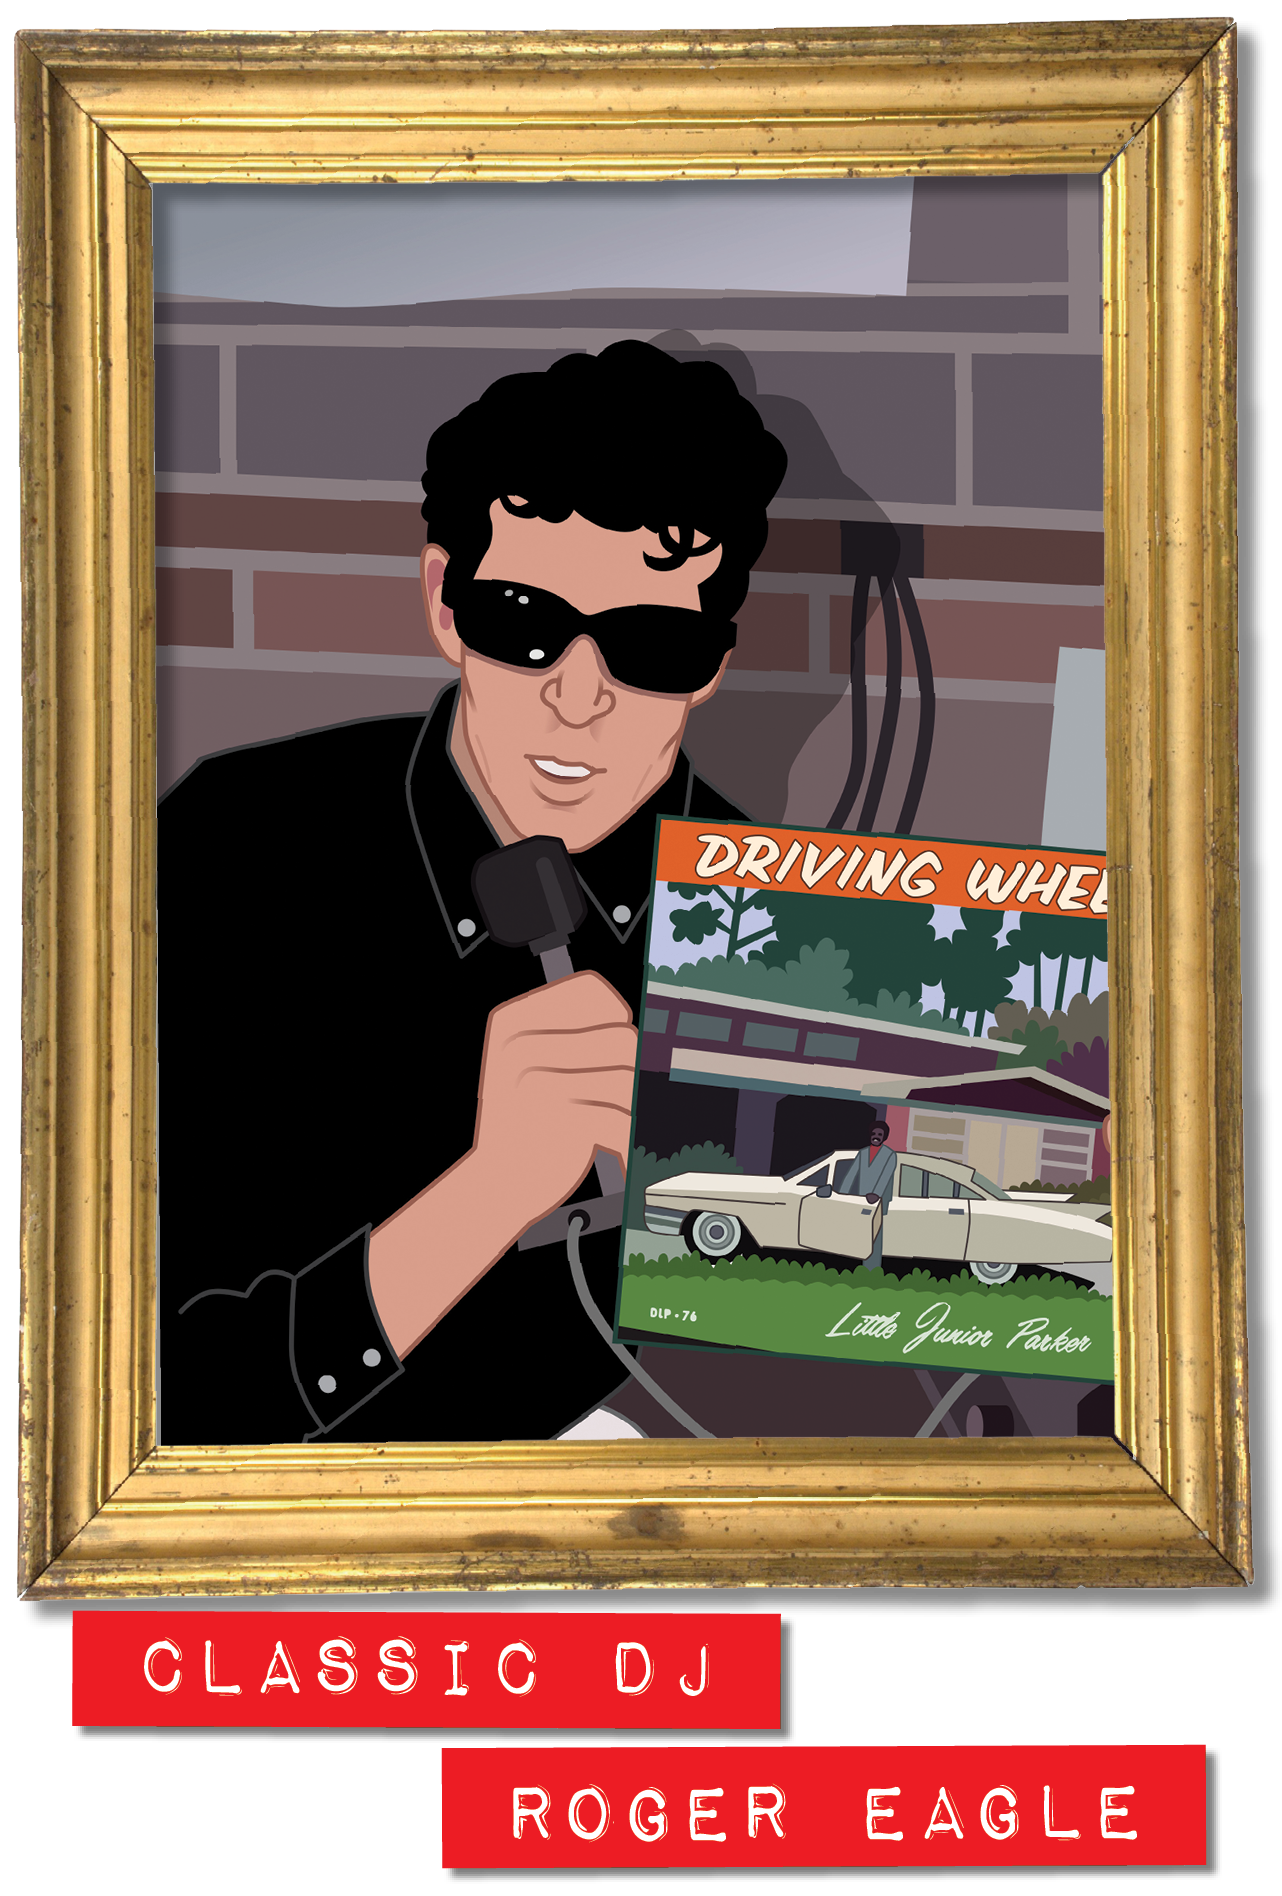 Archives djmag com in. Dj clipart discotheque